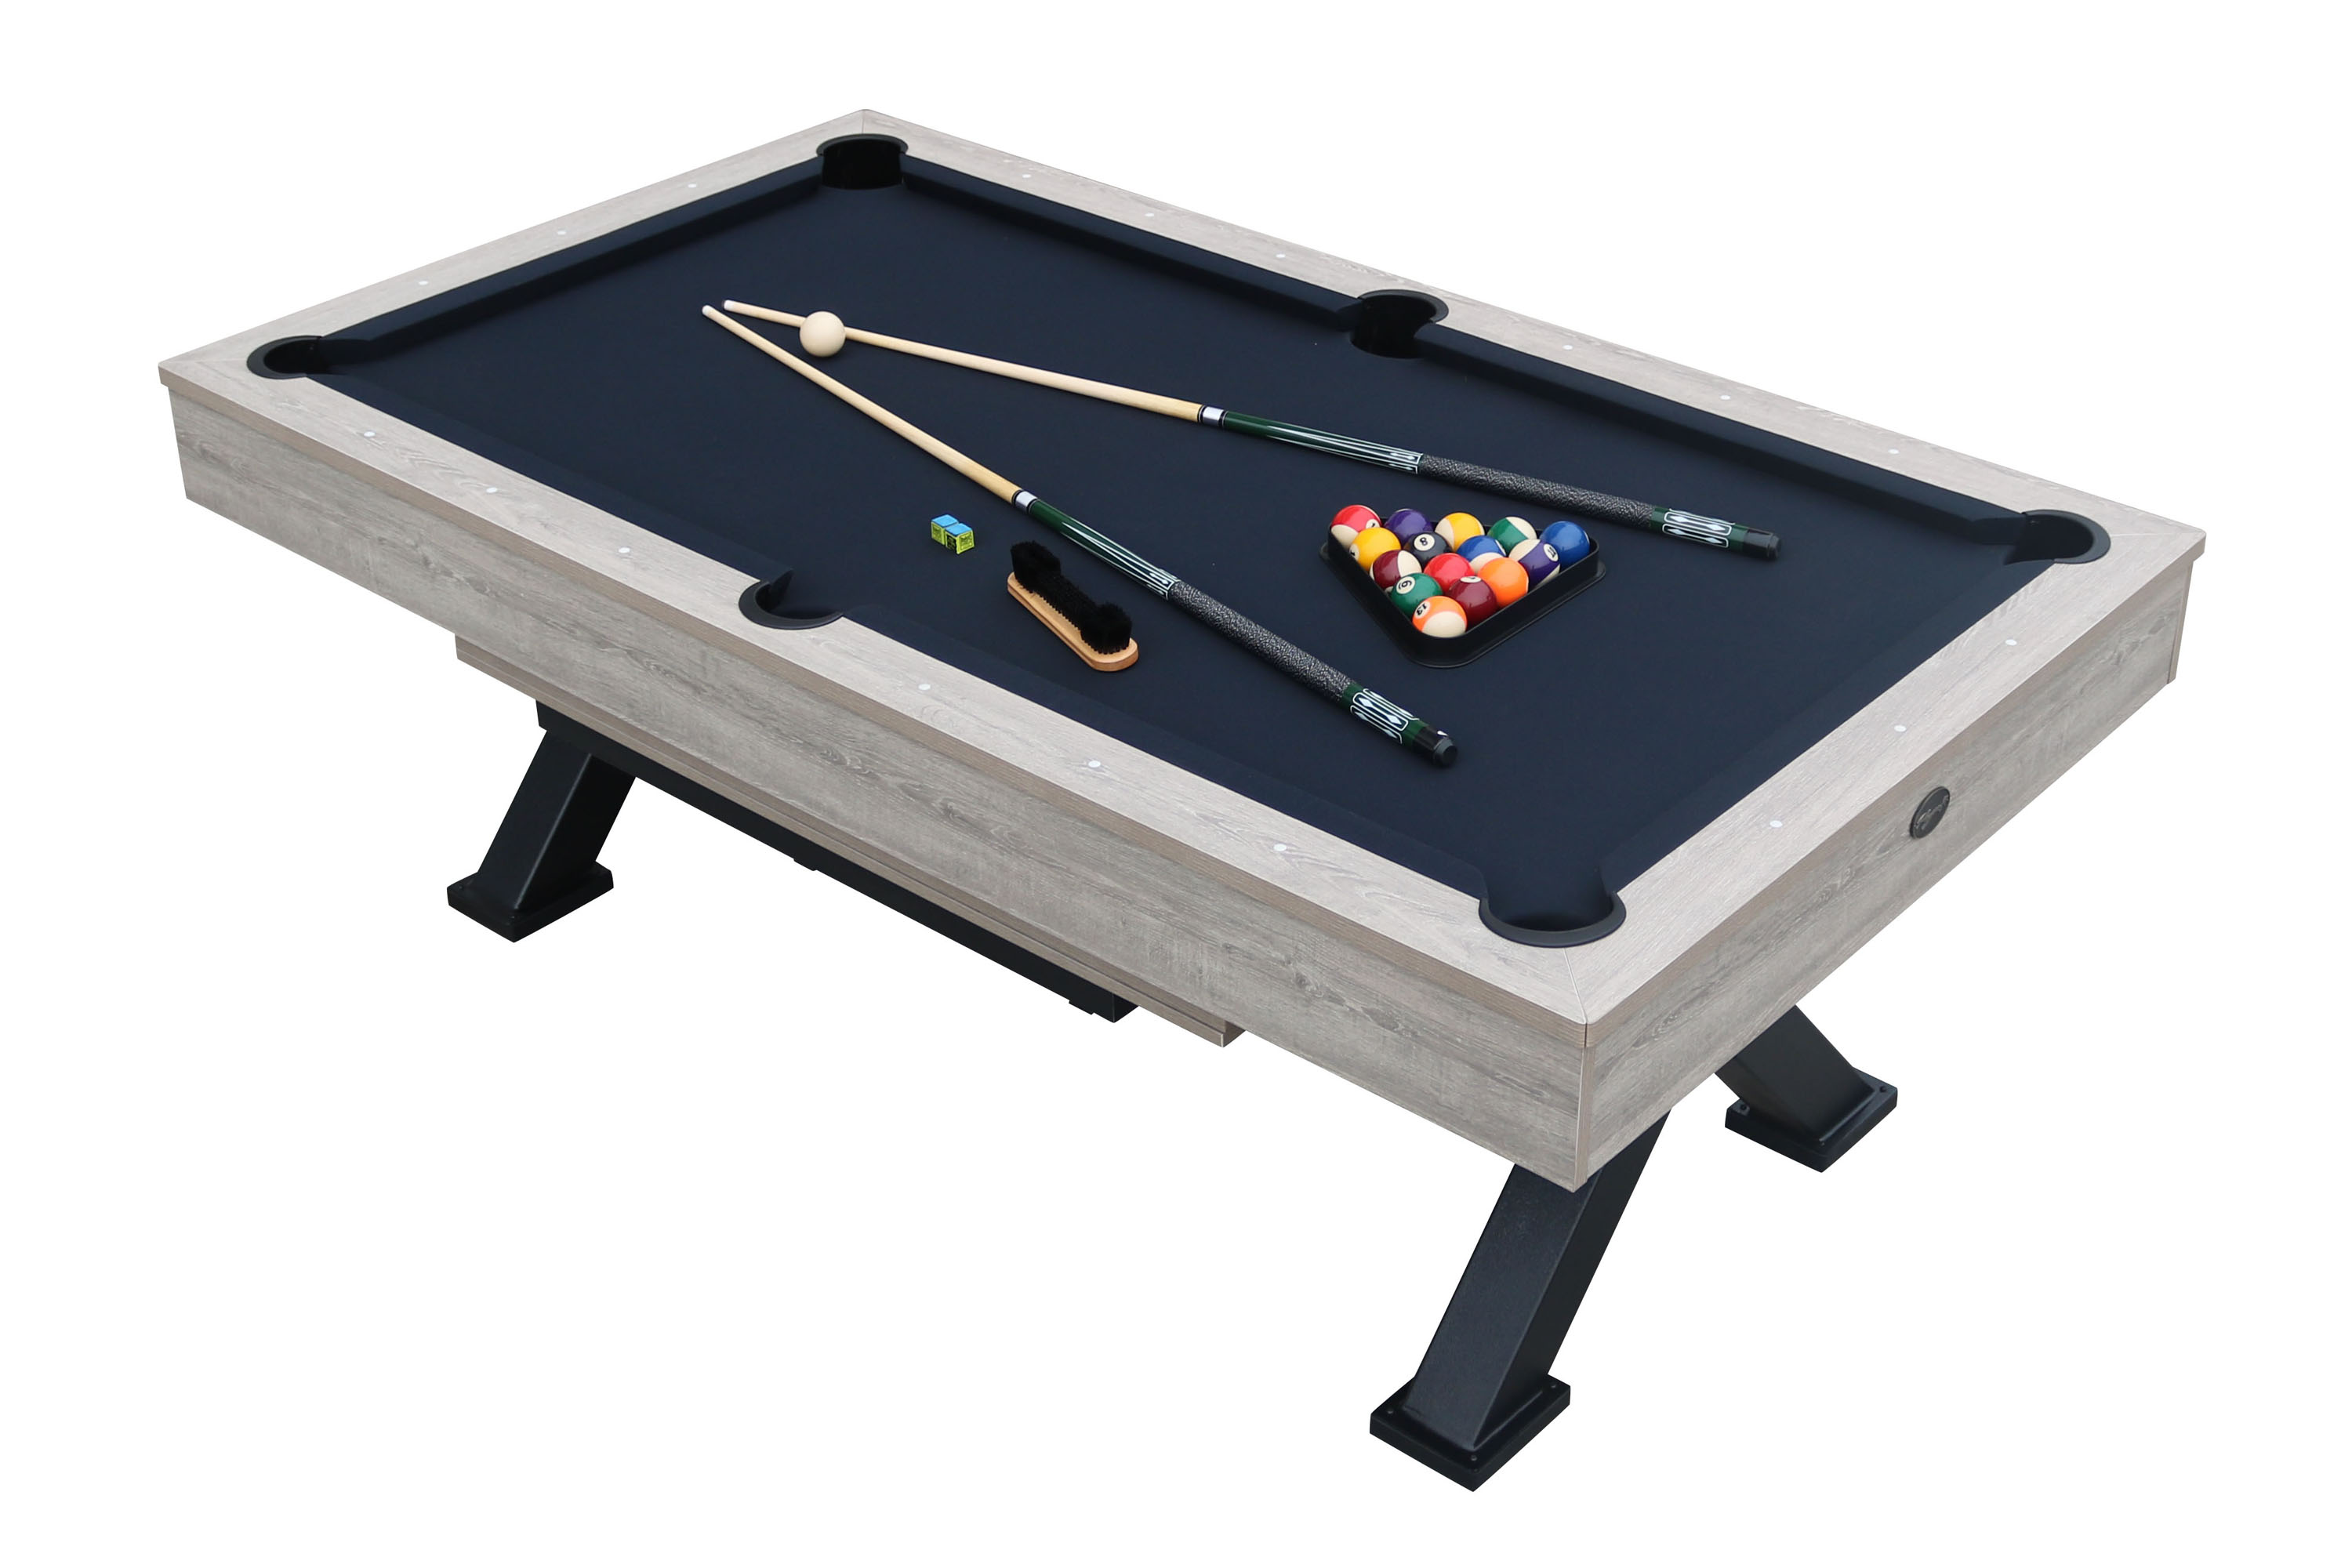 Playcraft Black Canyon 7' Pool Table with Dining Top - Walmart.com